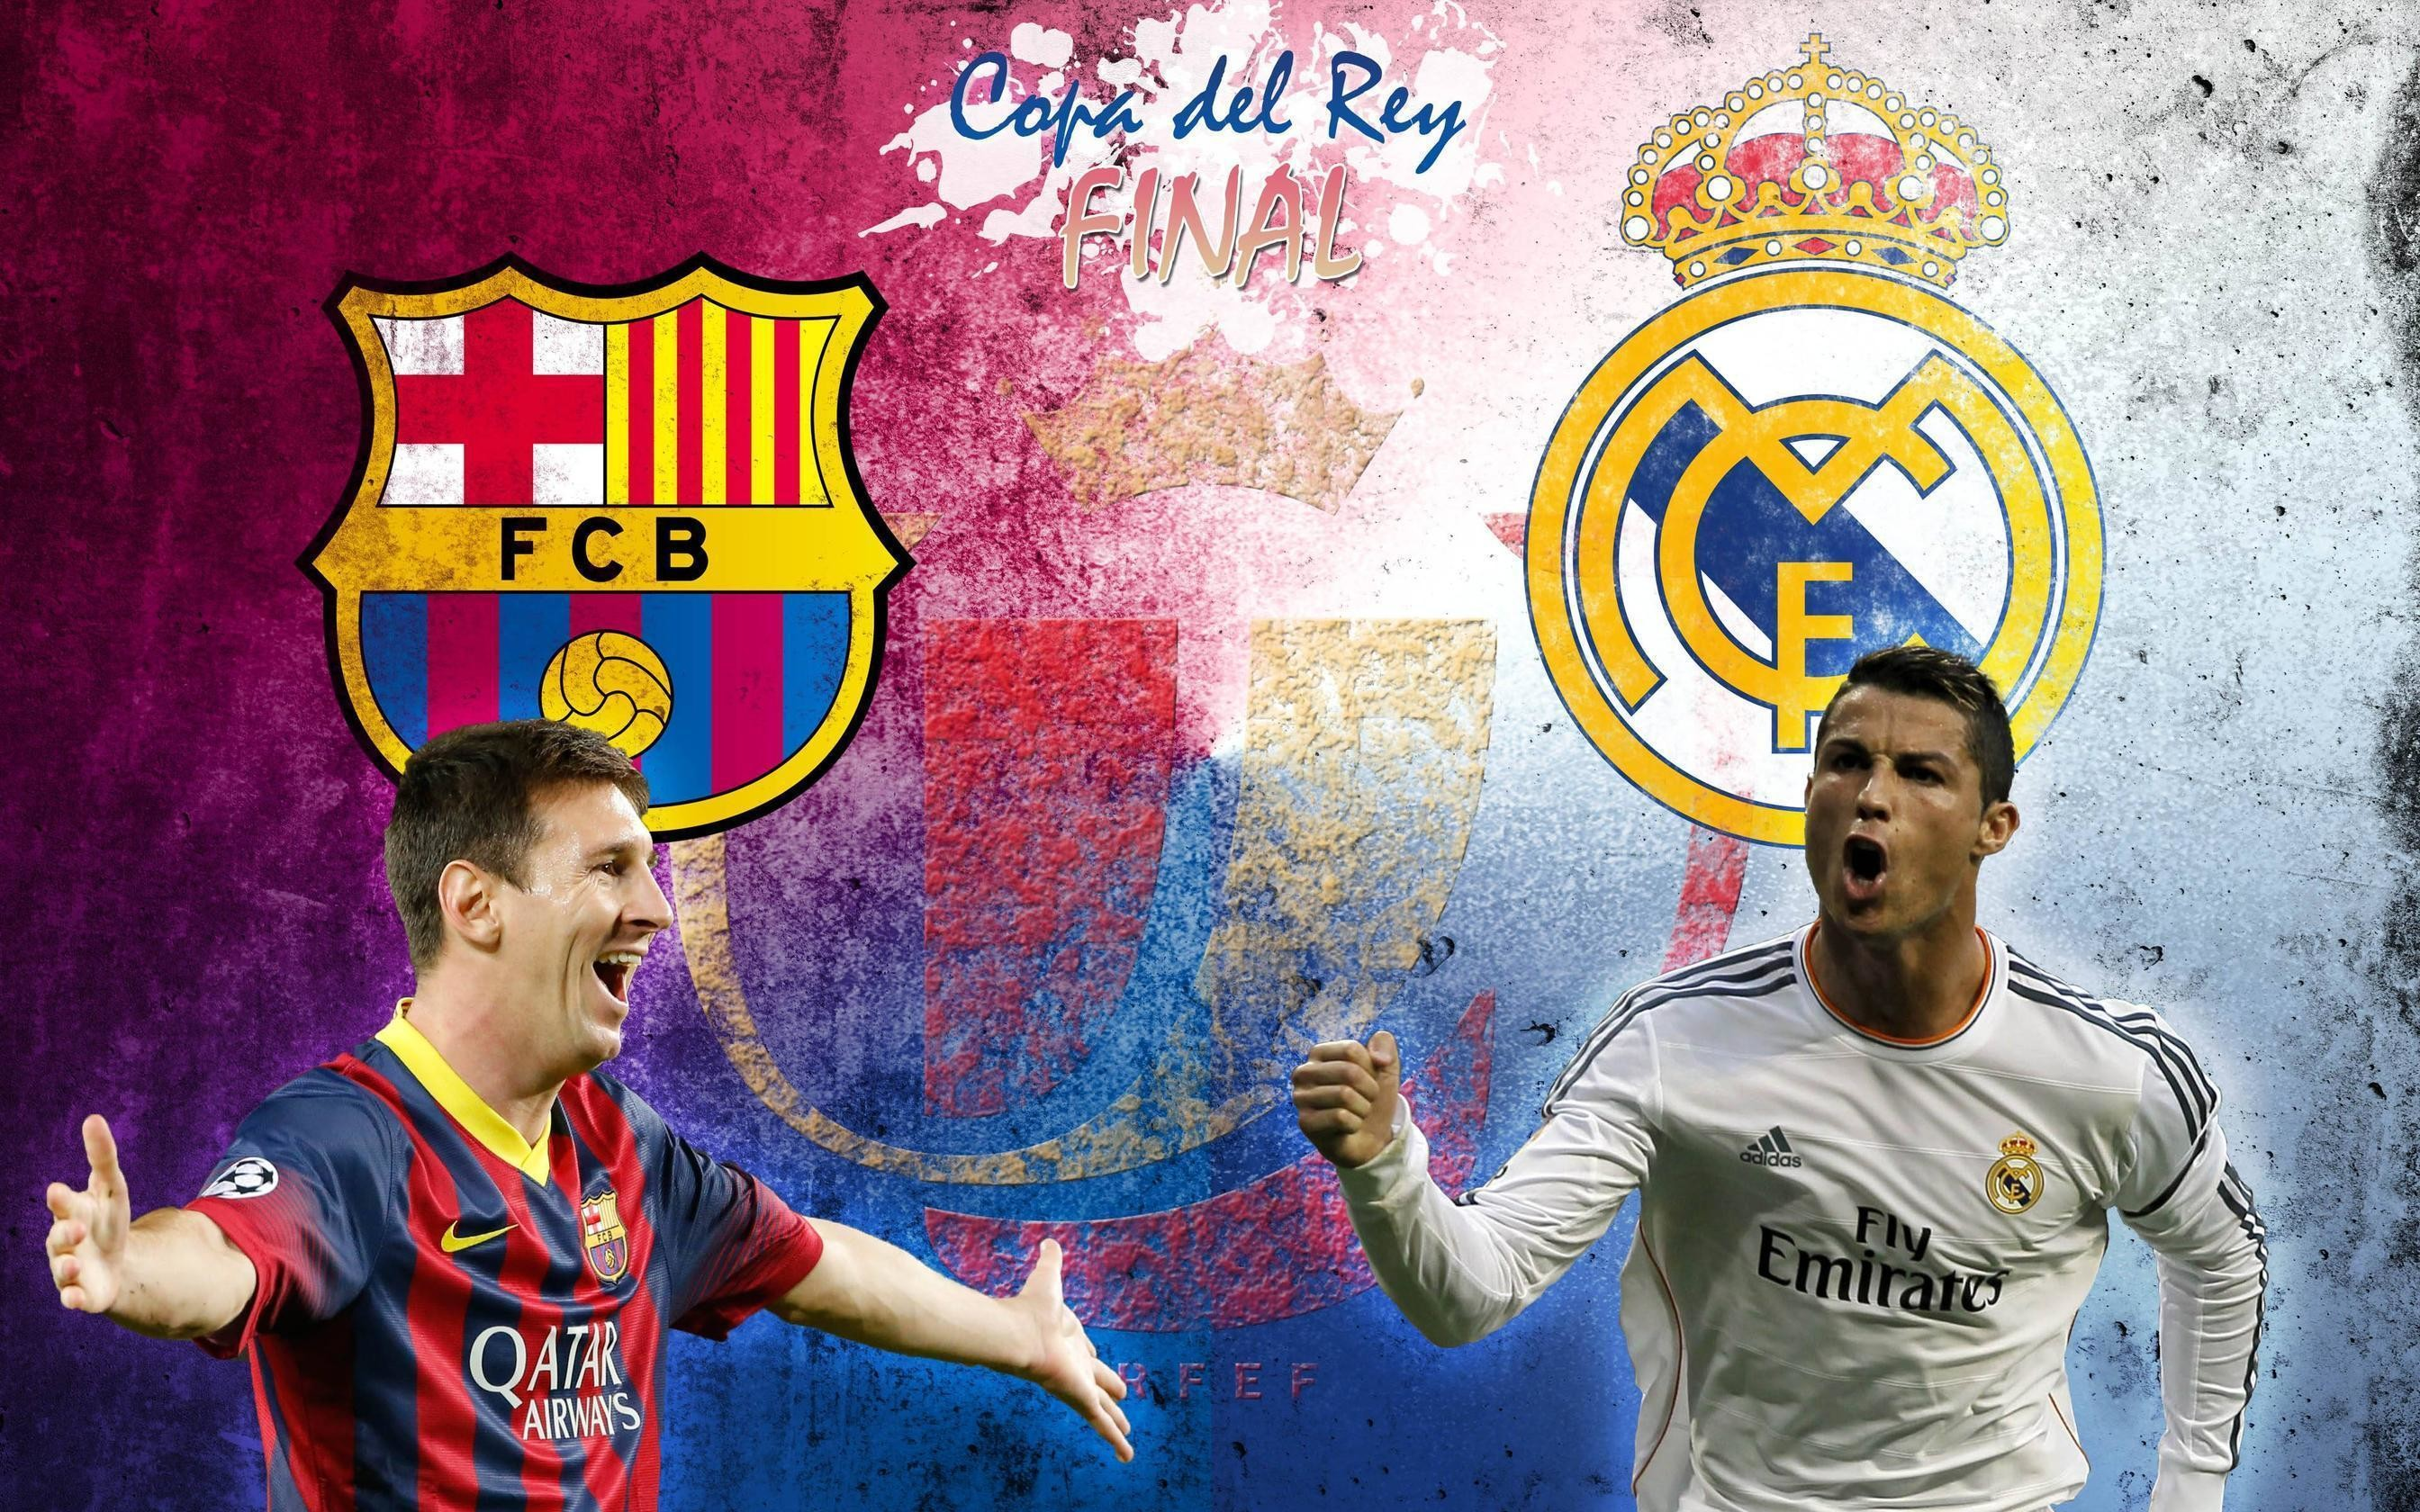 Messi Vs Ronaldo 2018 Wallpapers 92 Pictures